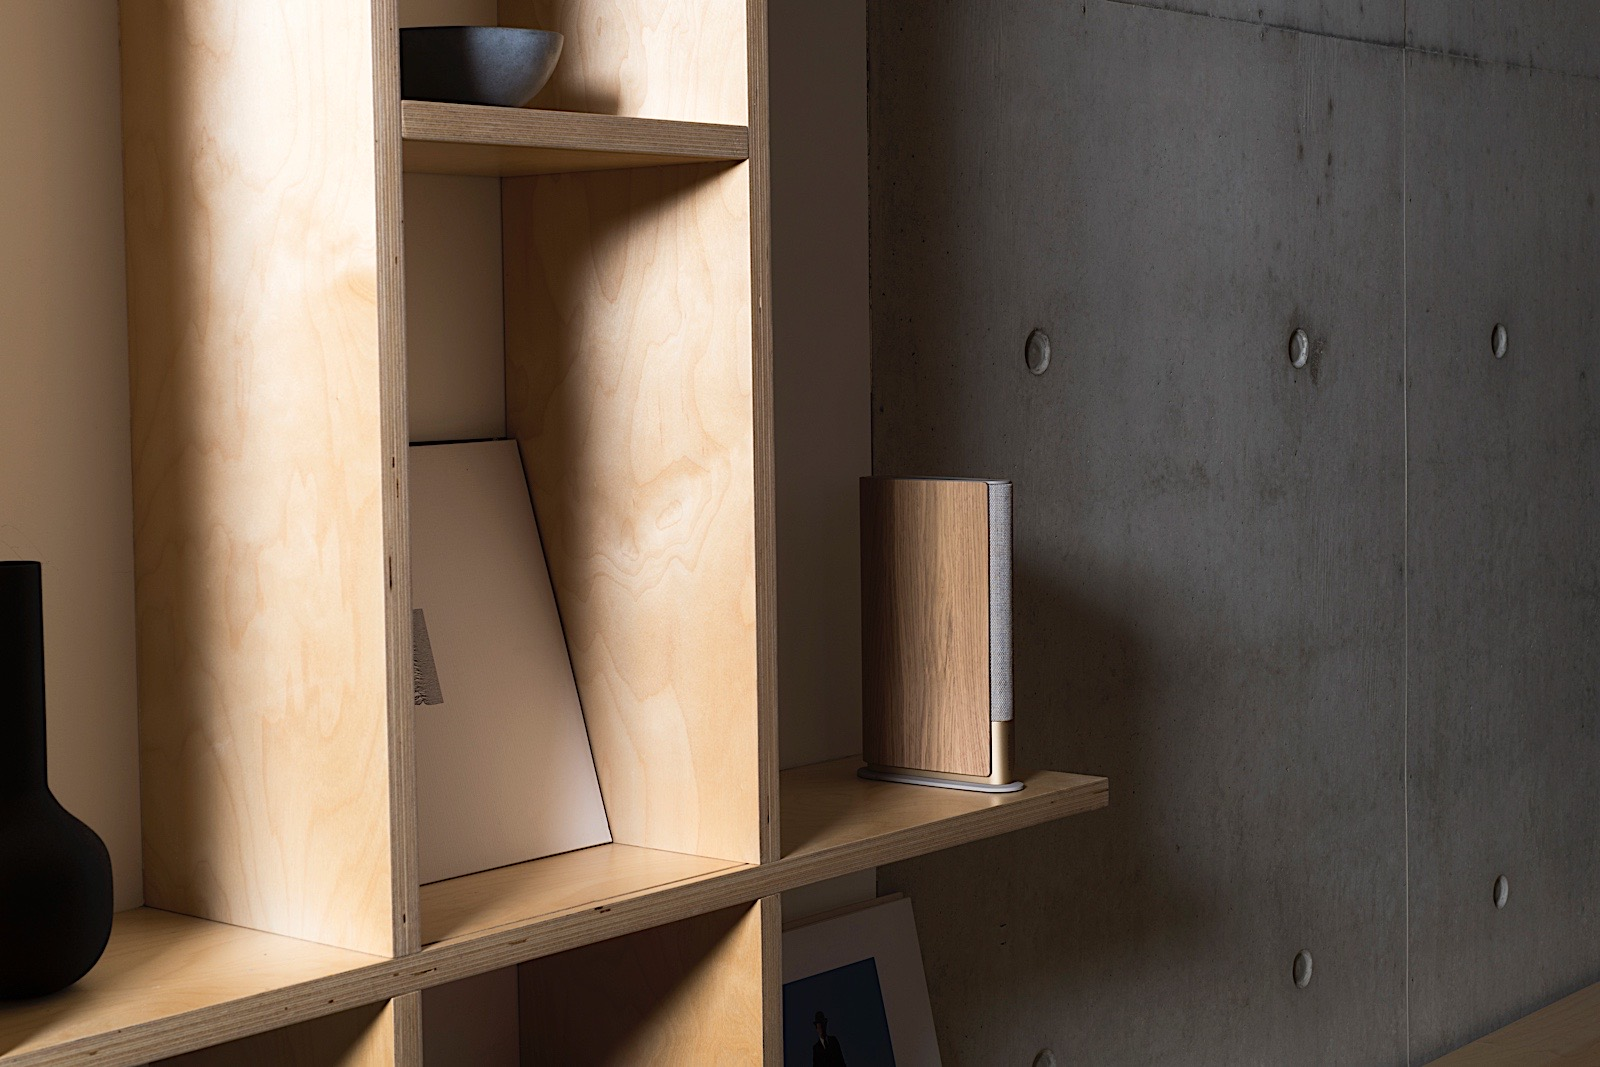 <p>With a design inspired by a book, Bang &amp; Olufsen's Beosound Emerge is an impressively slim and full-featured speaker.</p>